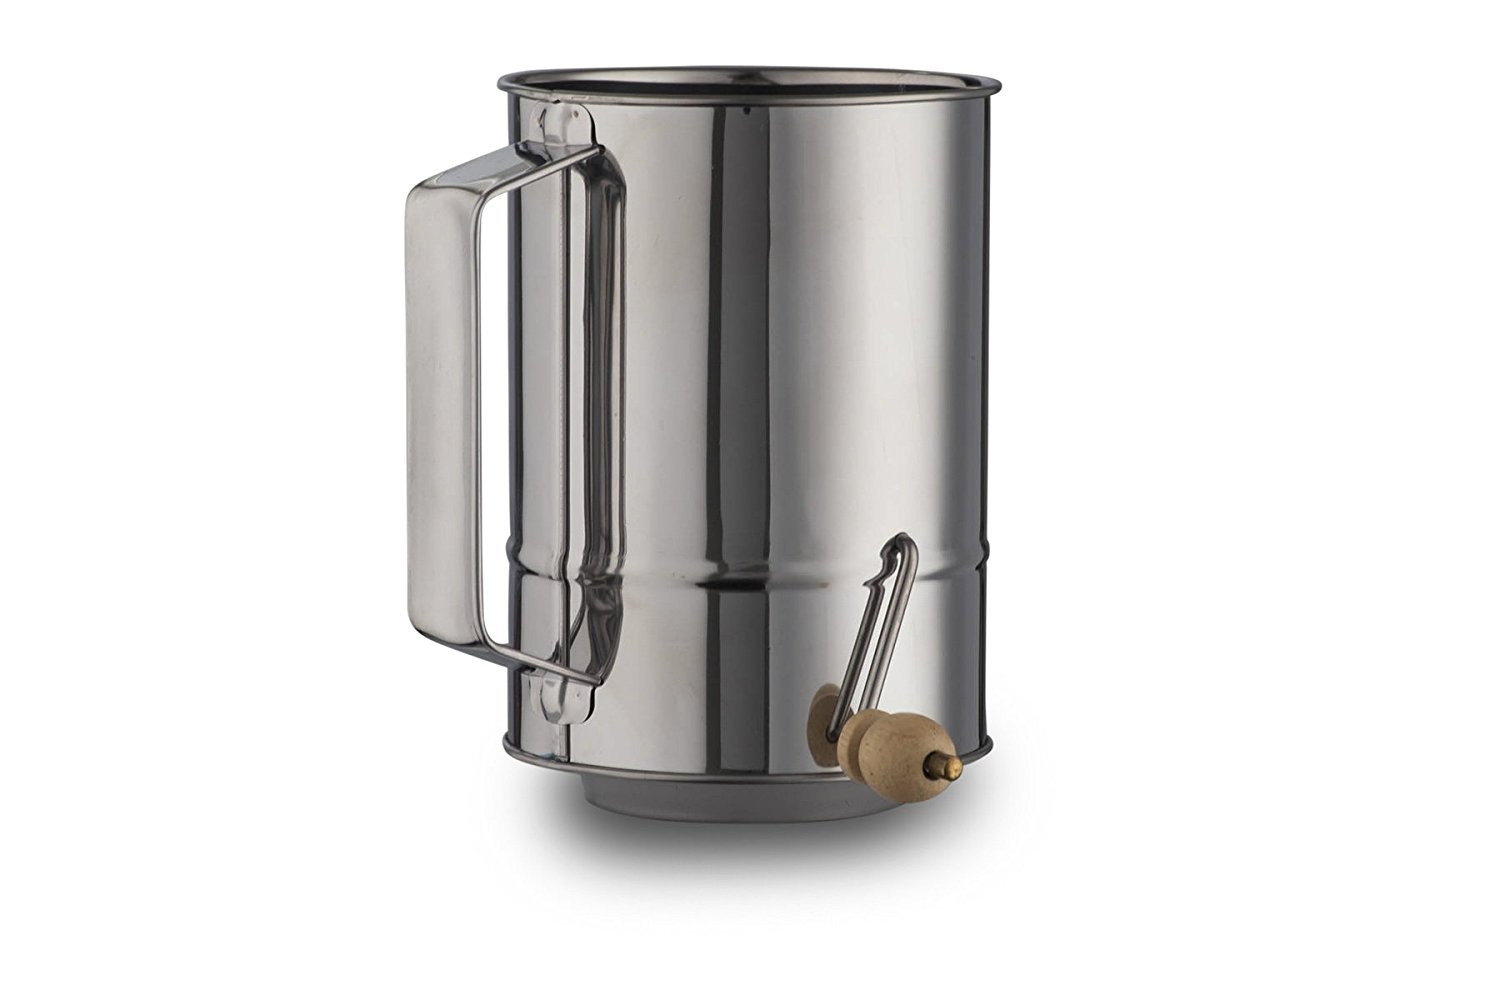 5 Cups Crank Flour Sifter Stainless Steel Polished Finish ( by Kitchen Winners ) by Kitchen Winners